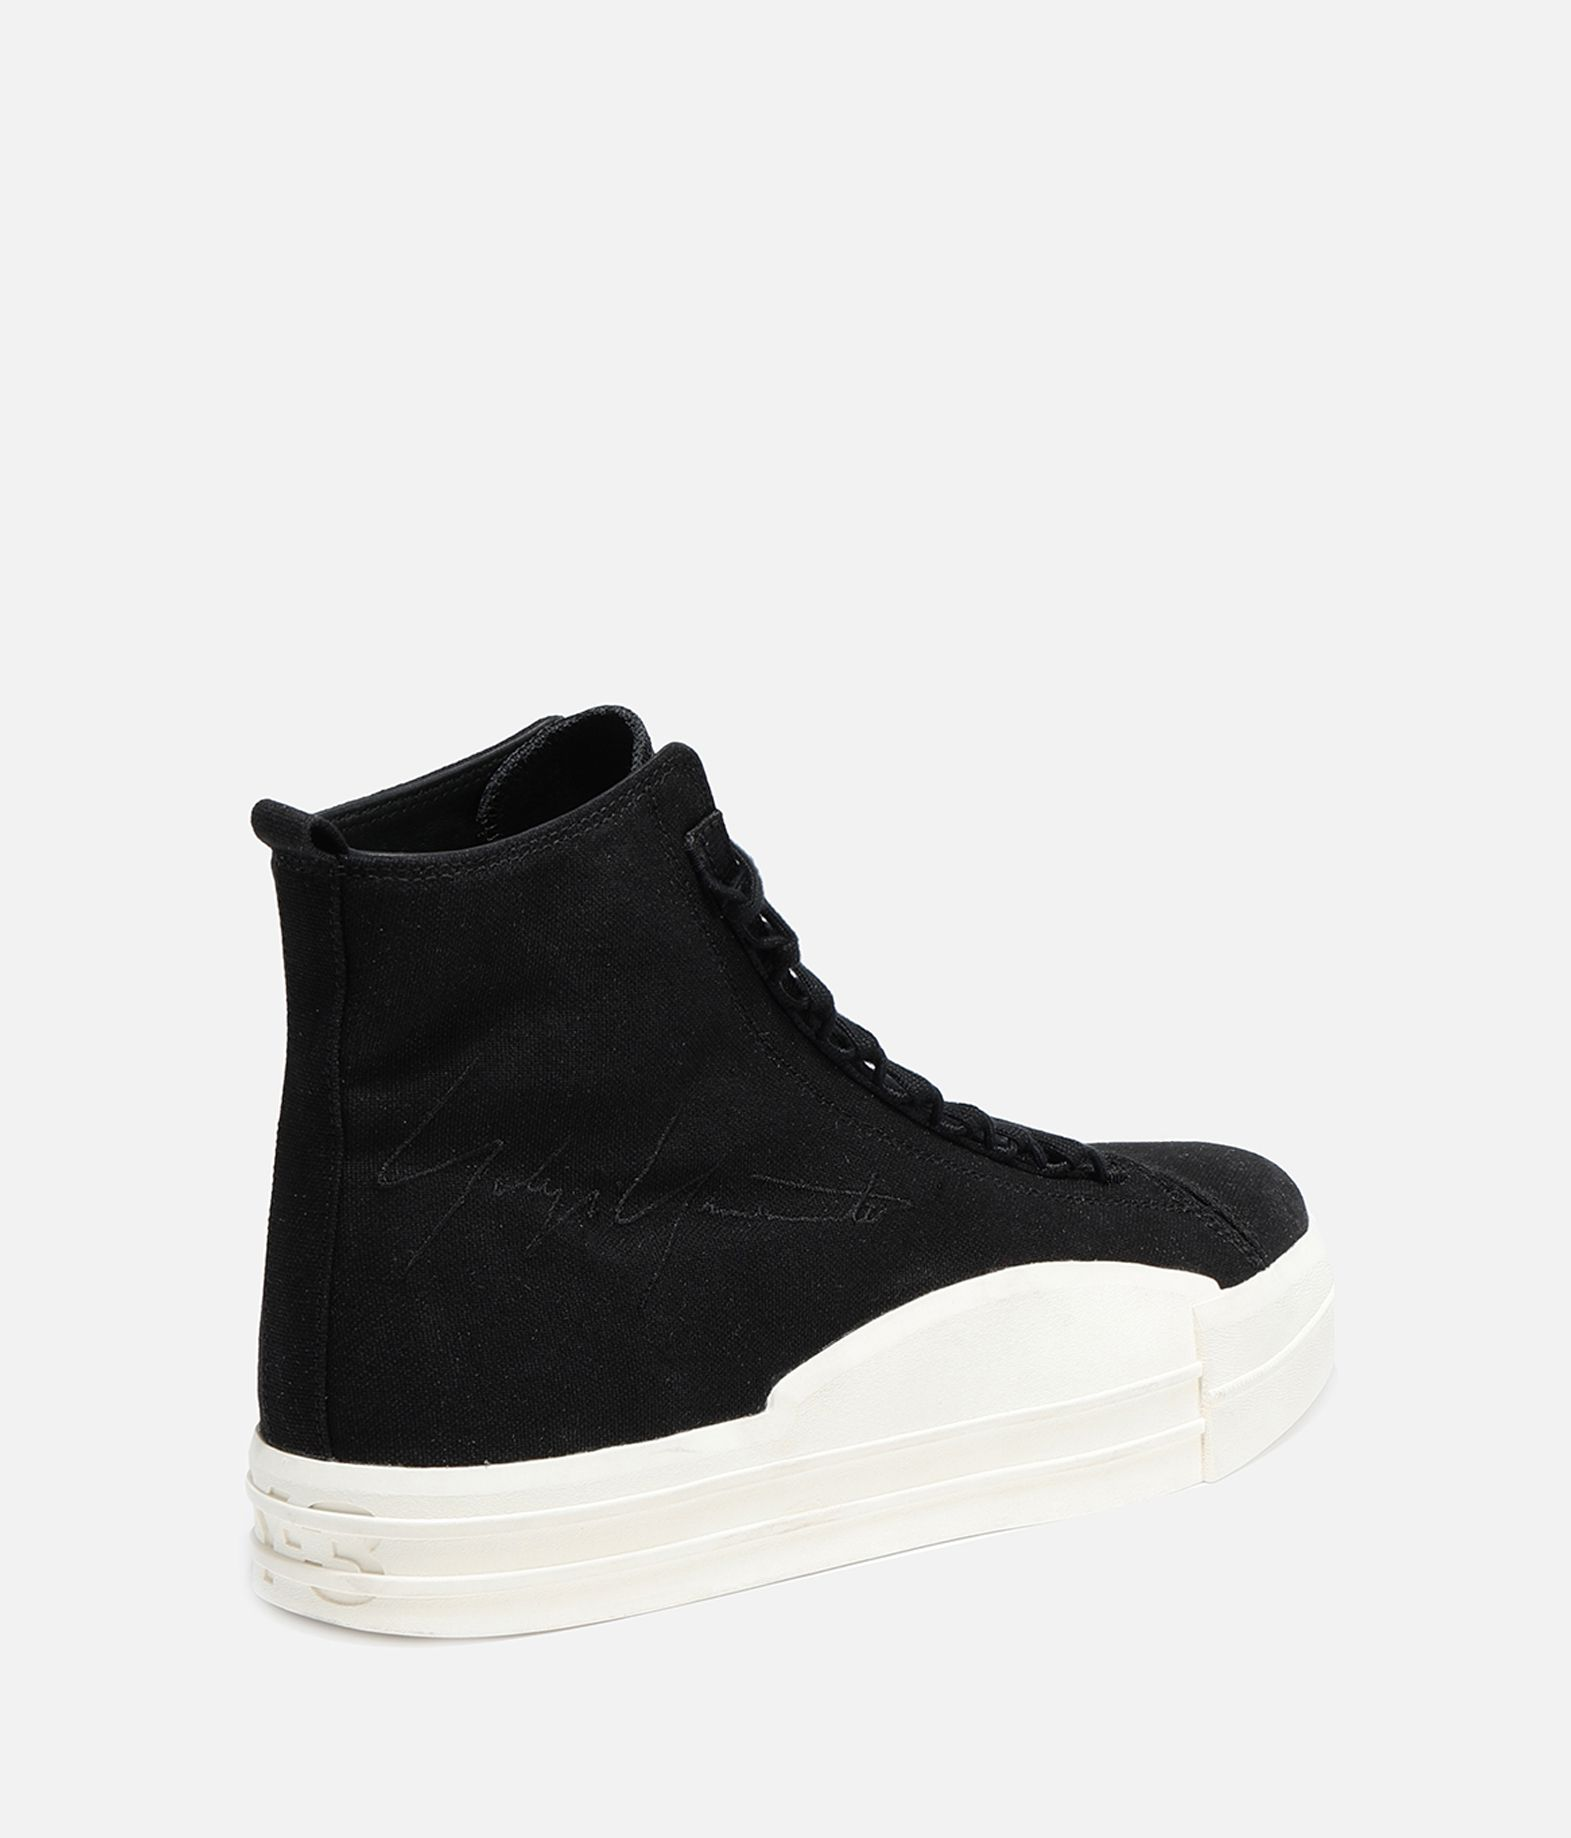 Y-3 Y-3 Yuben Mid High-top sneakers E d